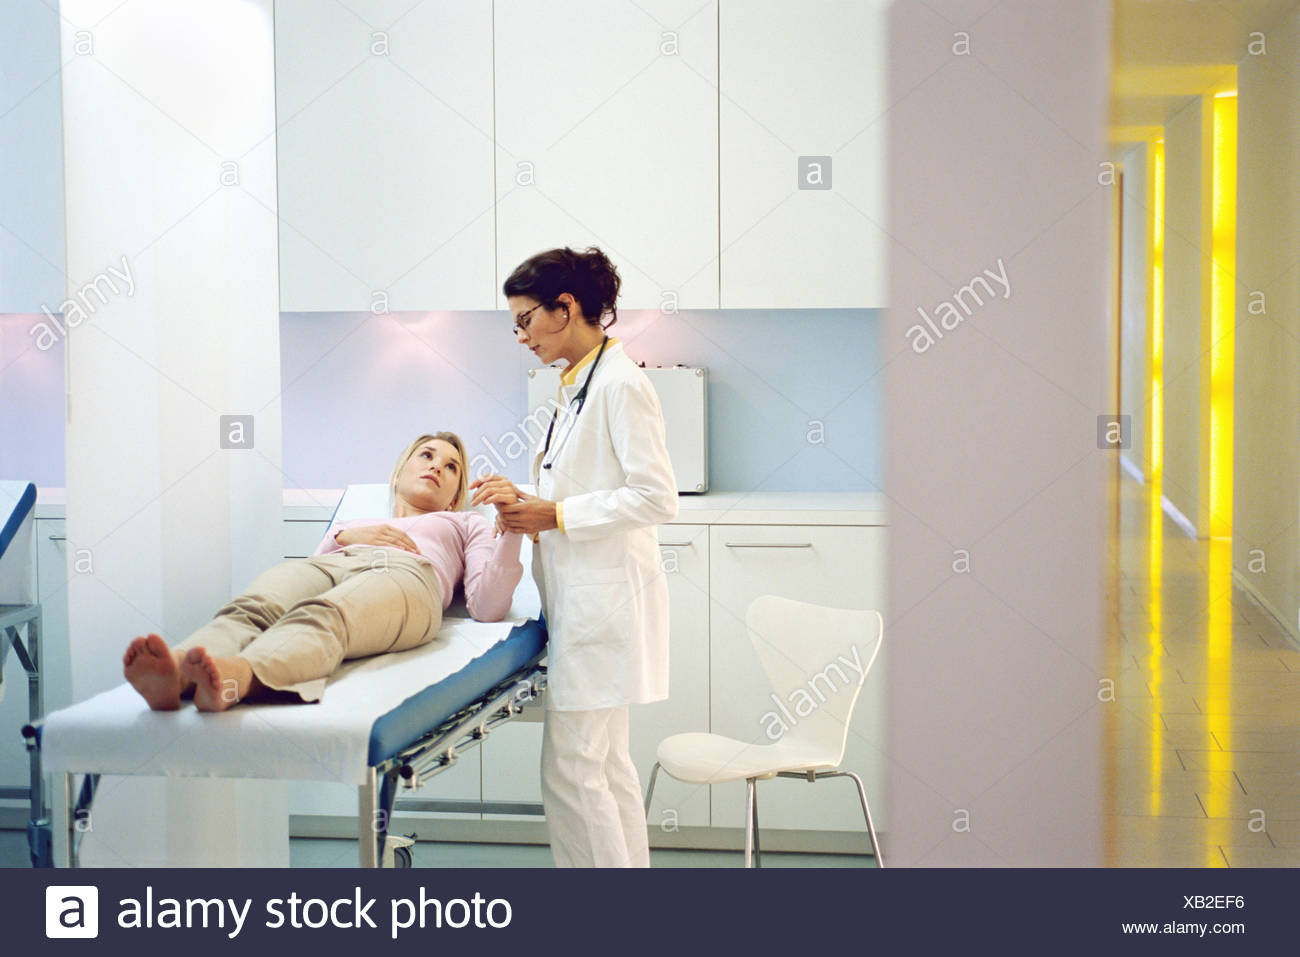 View of a female patient being examined by a female doctor - Stock Image